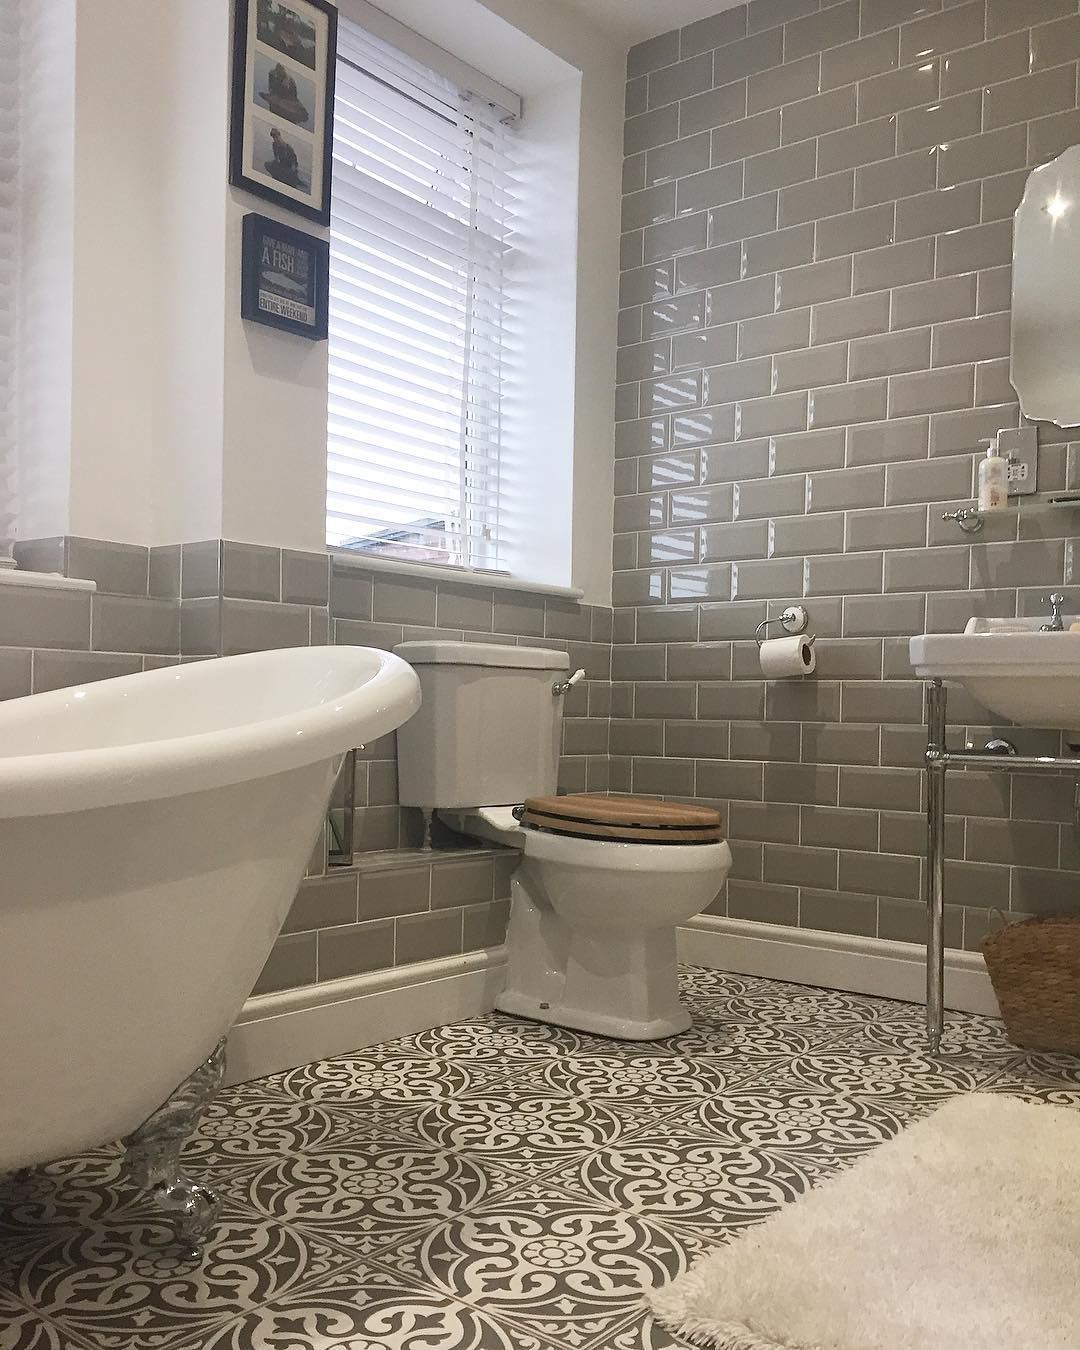 I Will Never Tire Of My Bathroom Do You Think If We Move I Could Take It With M Bathroom Small Bathroom Remodel Bathroom Interior Design Bathroom Interior